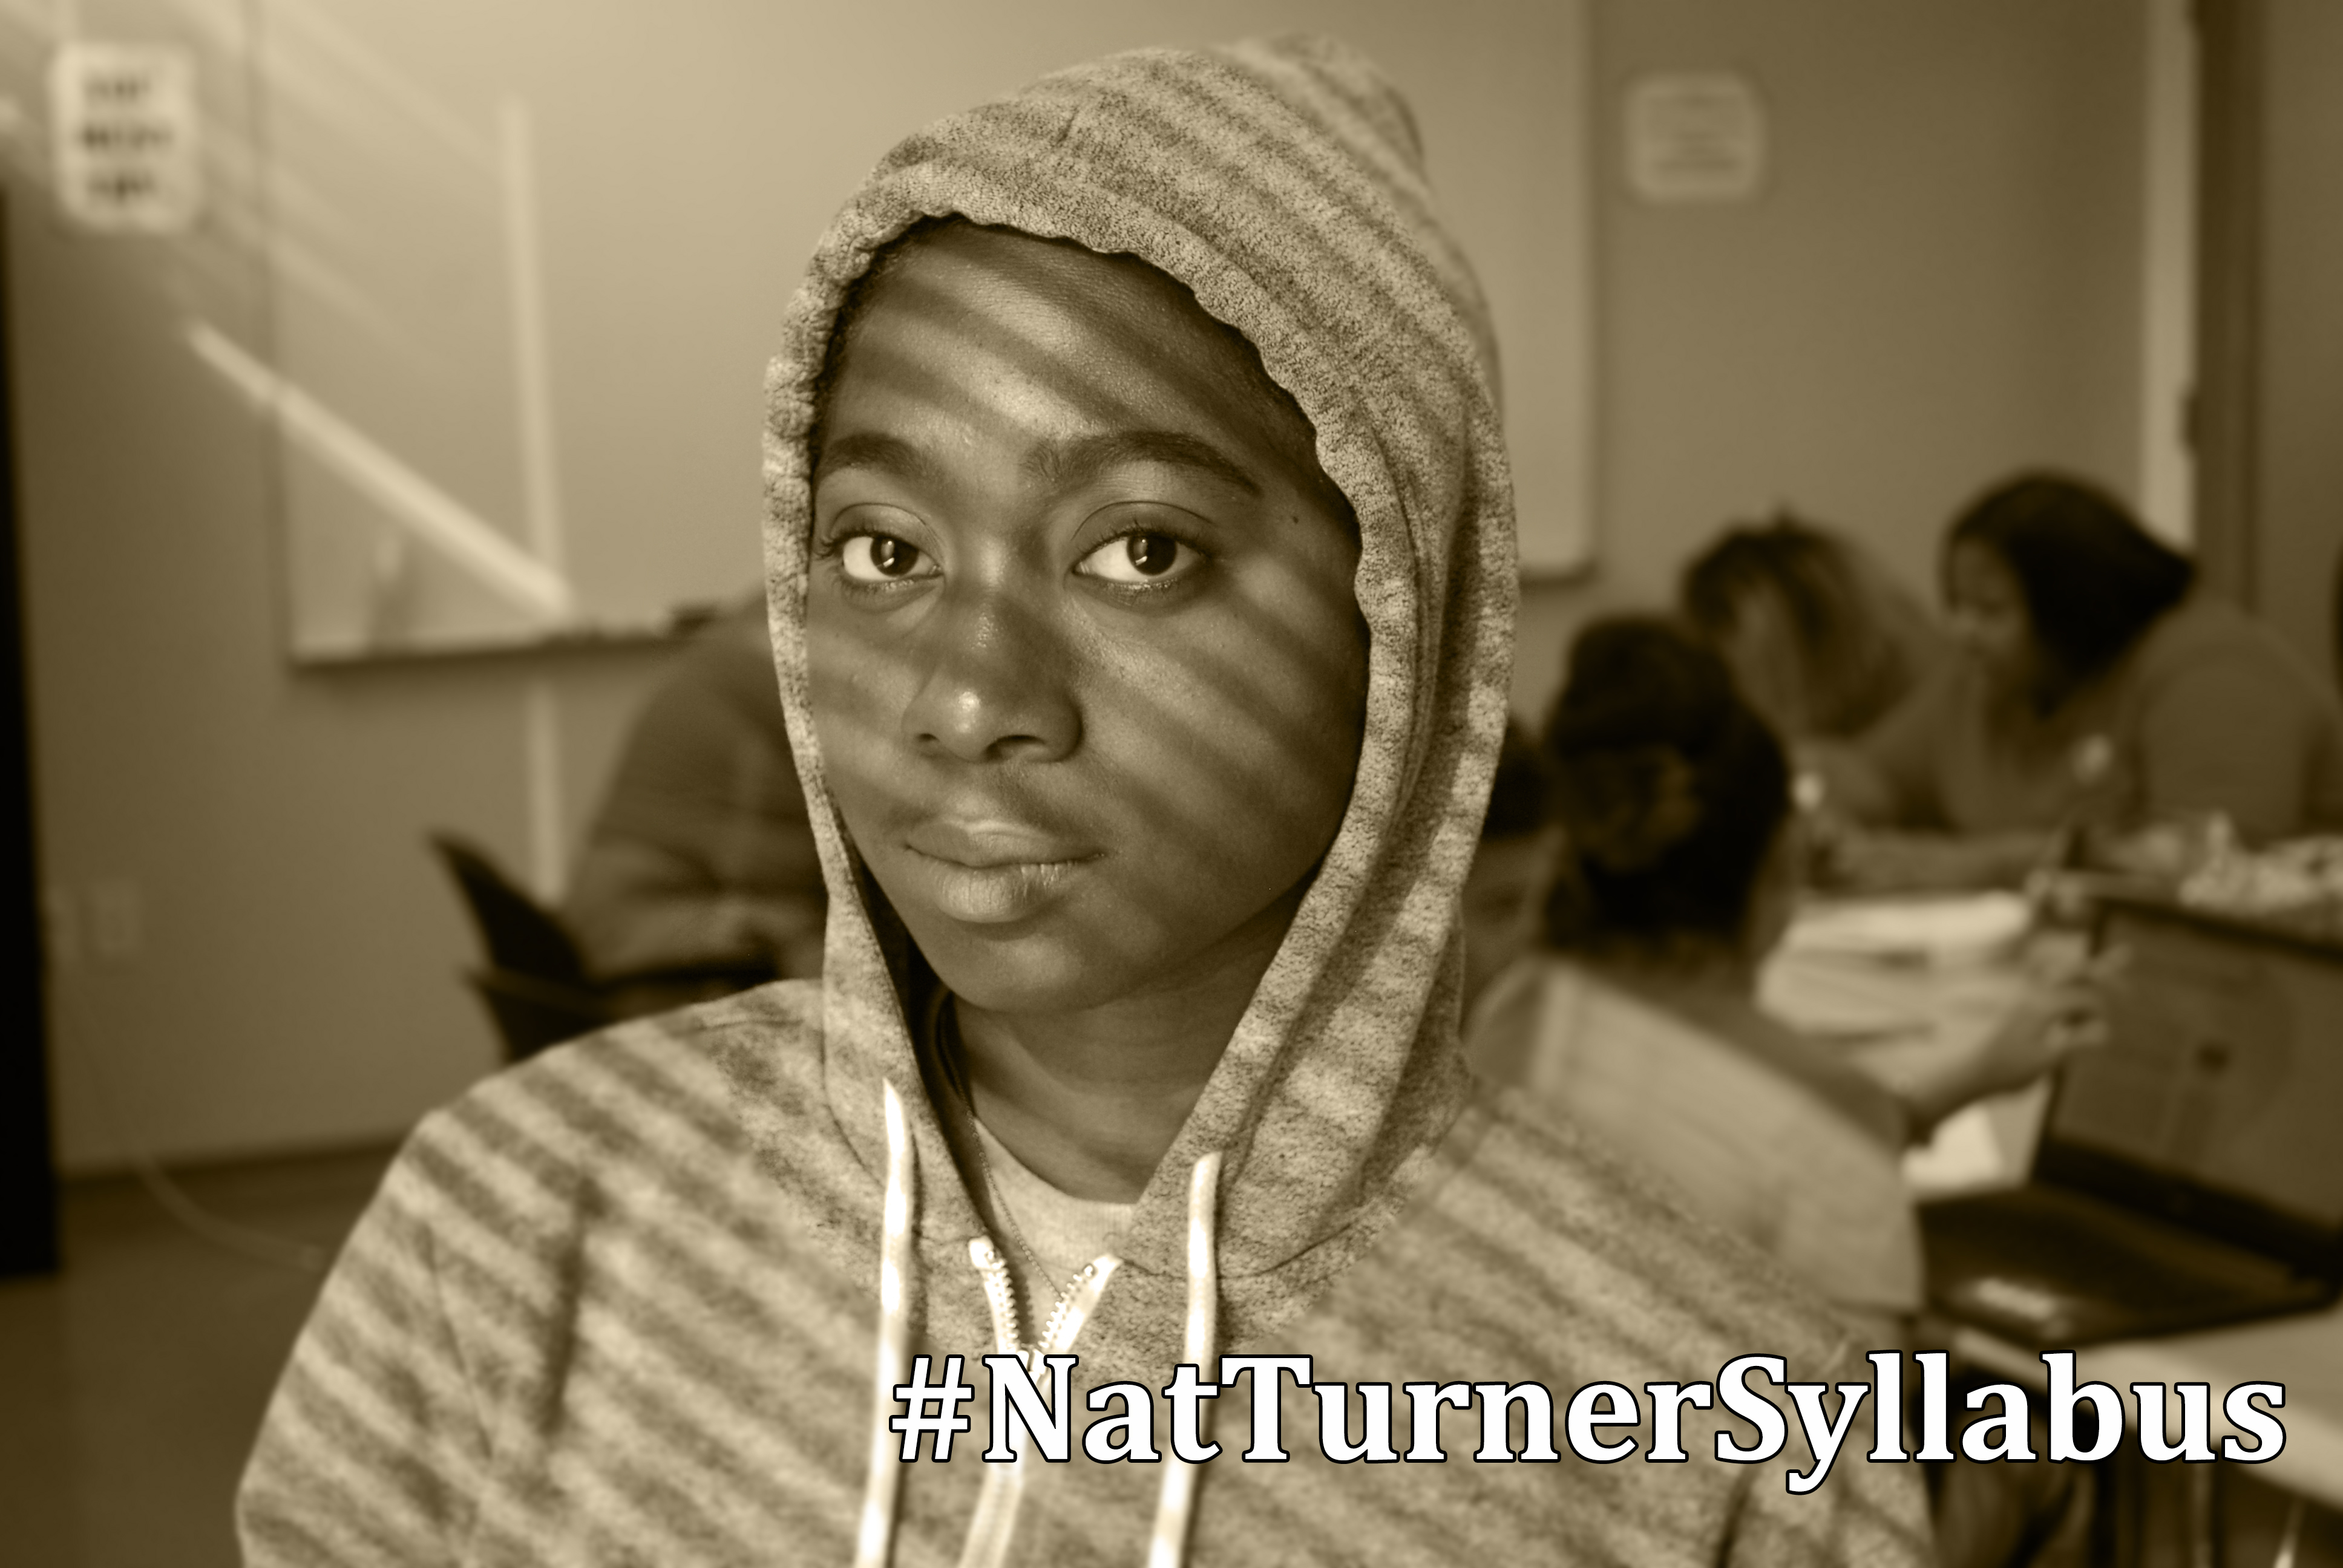 natturnersyllabus learning and teaching nat turner slavery and home